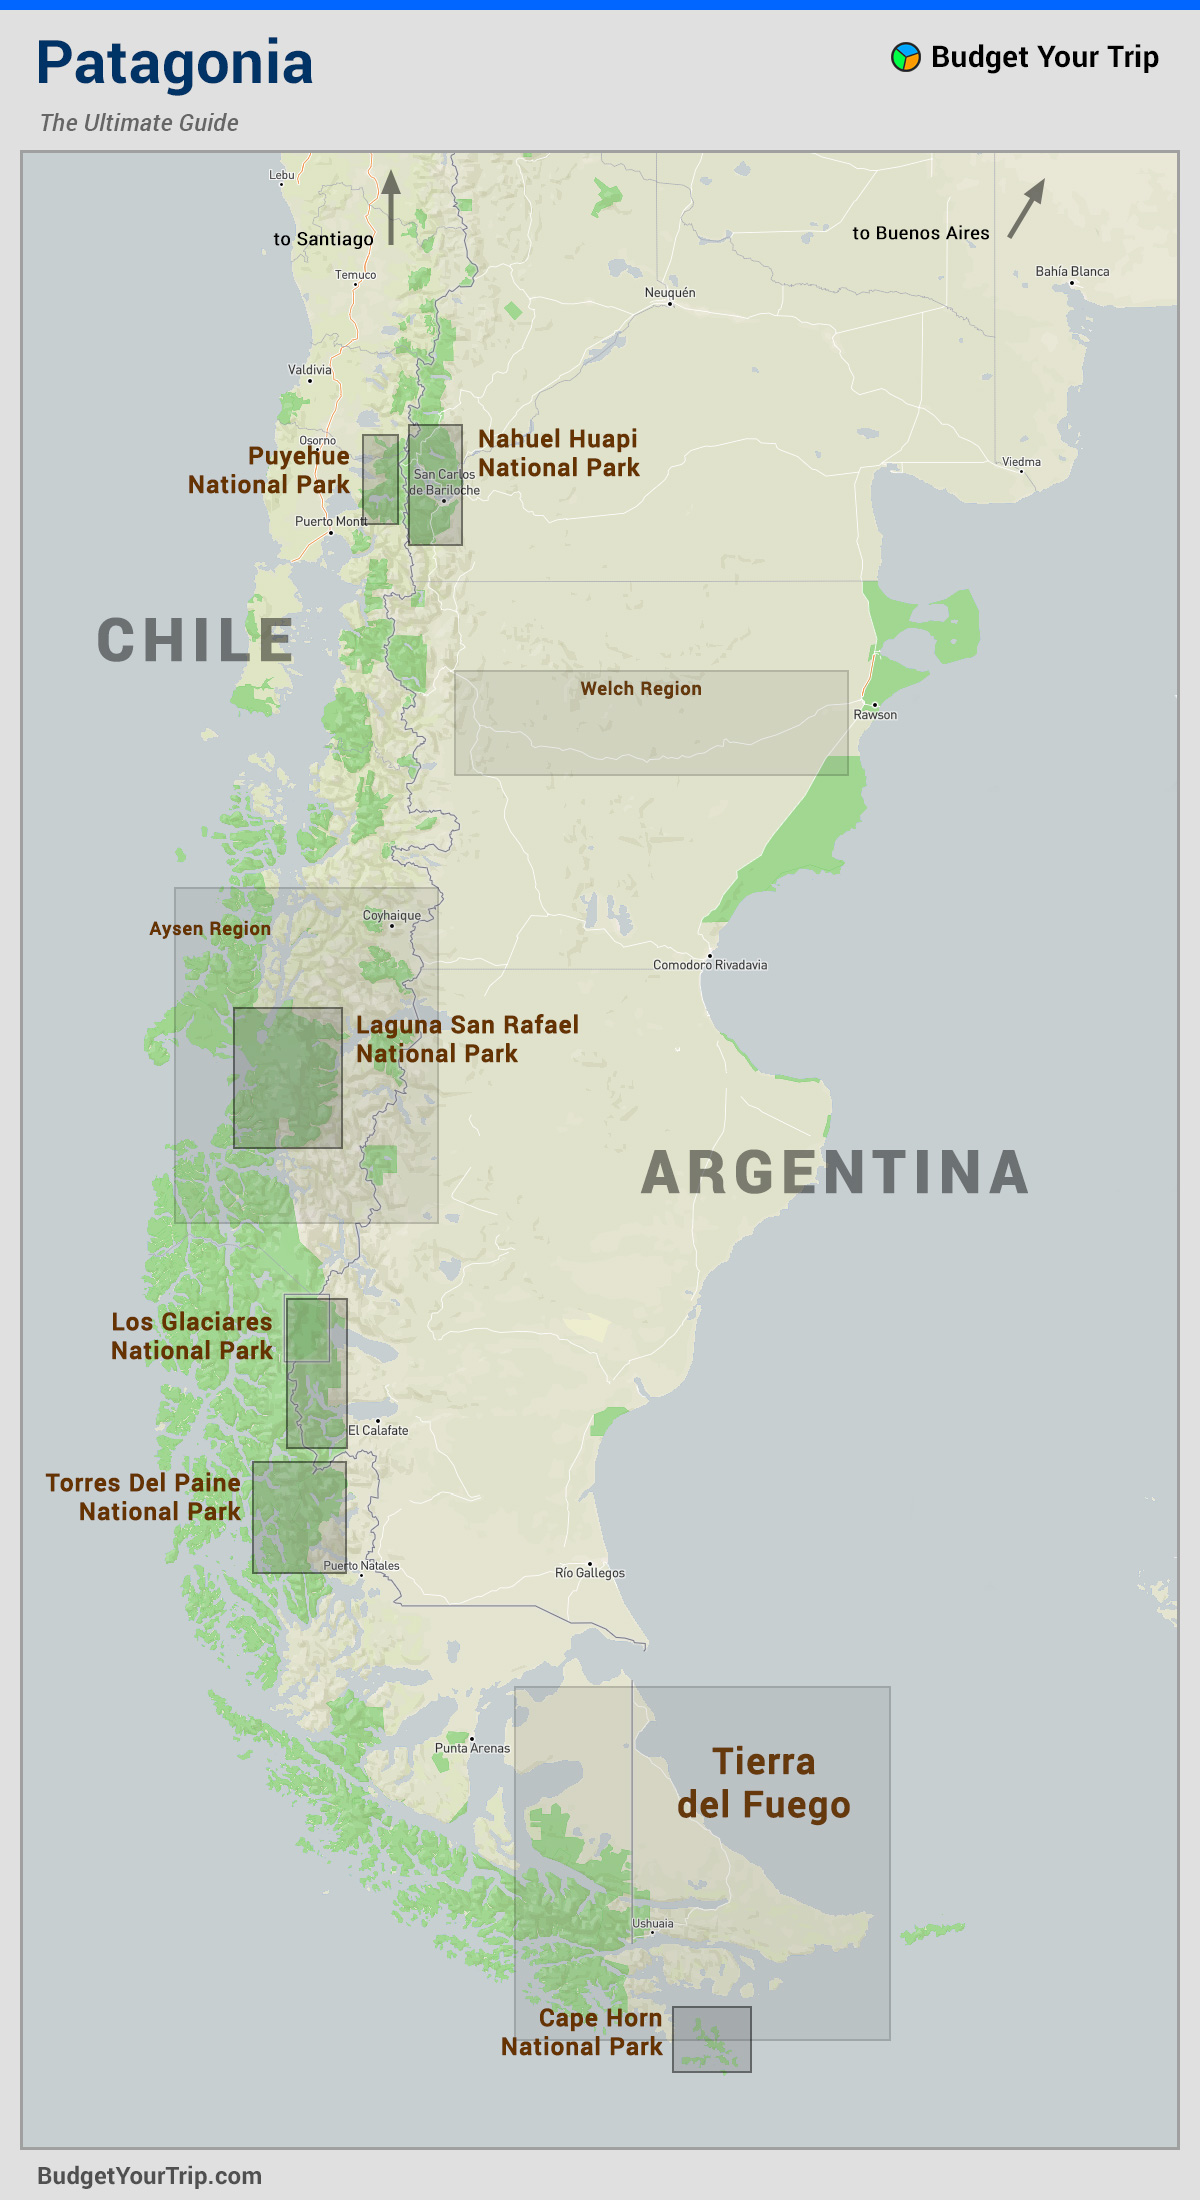 Map Regions Of Patagonia Budget Your Trip